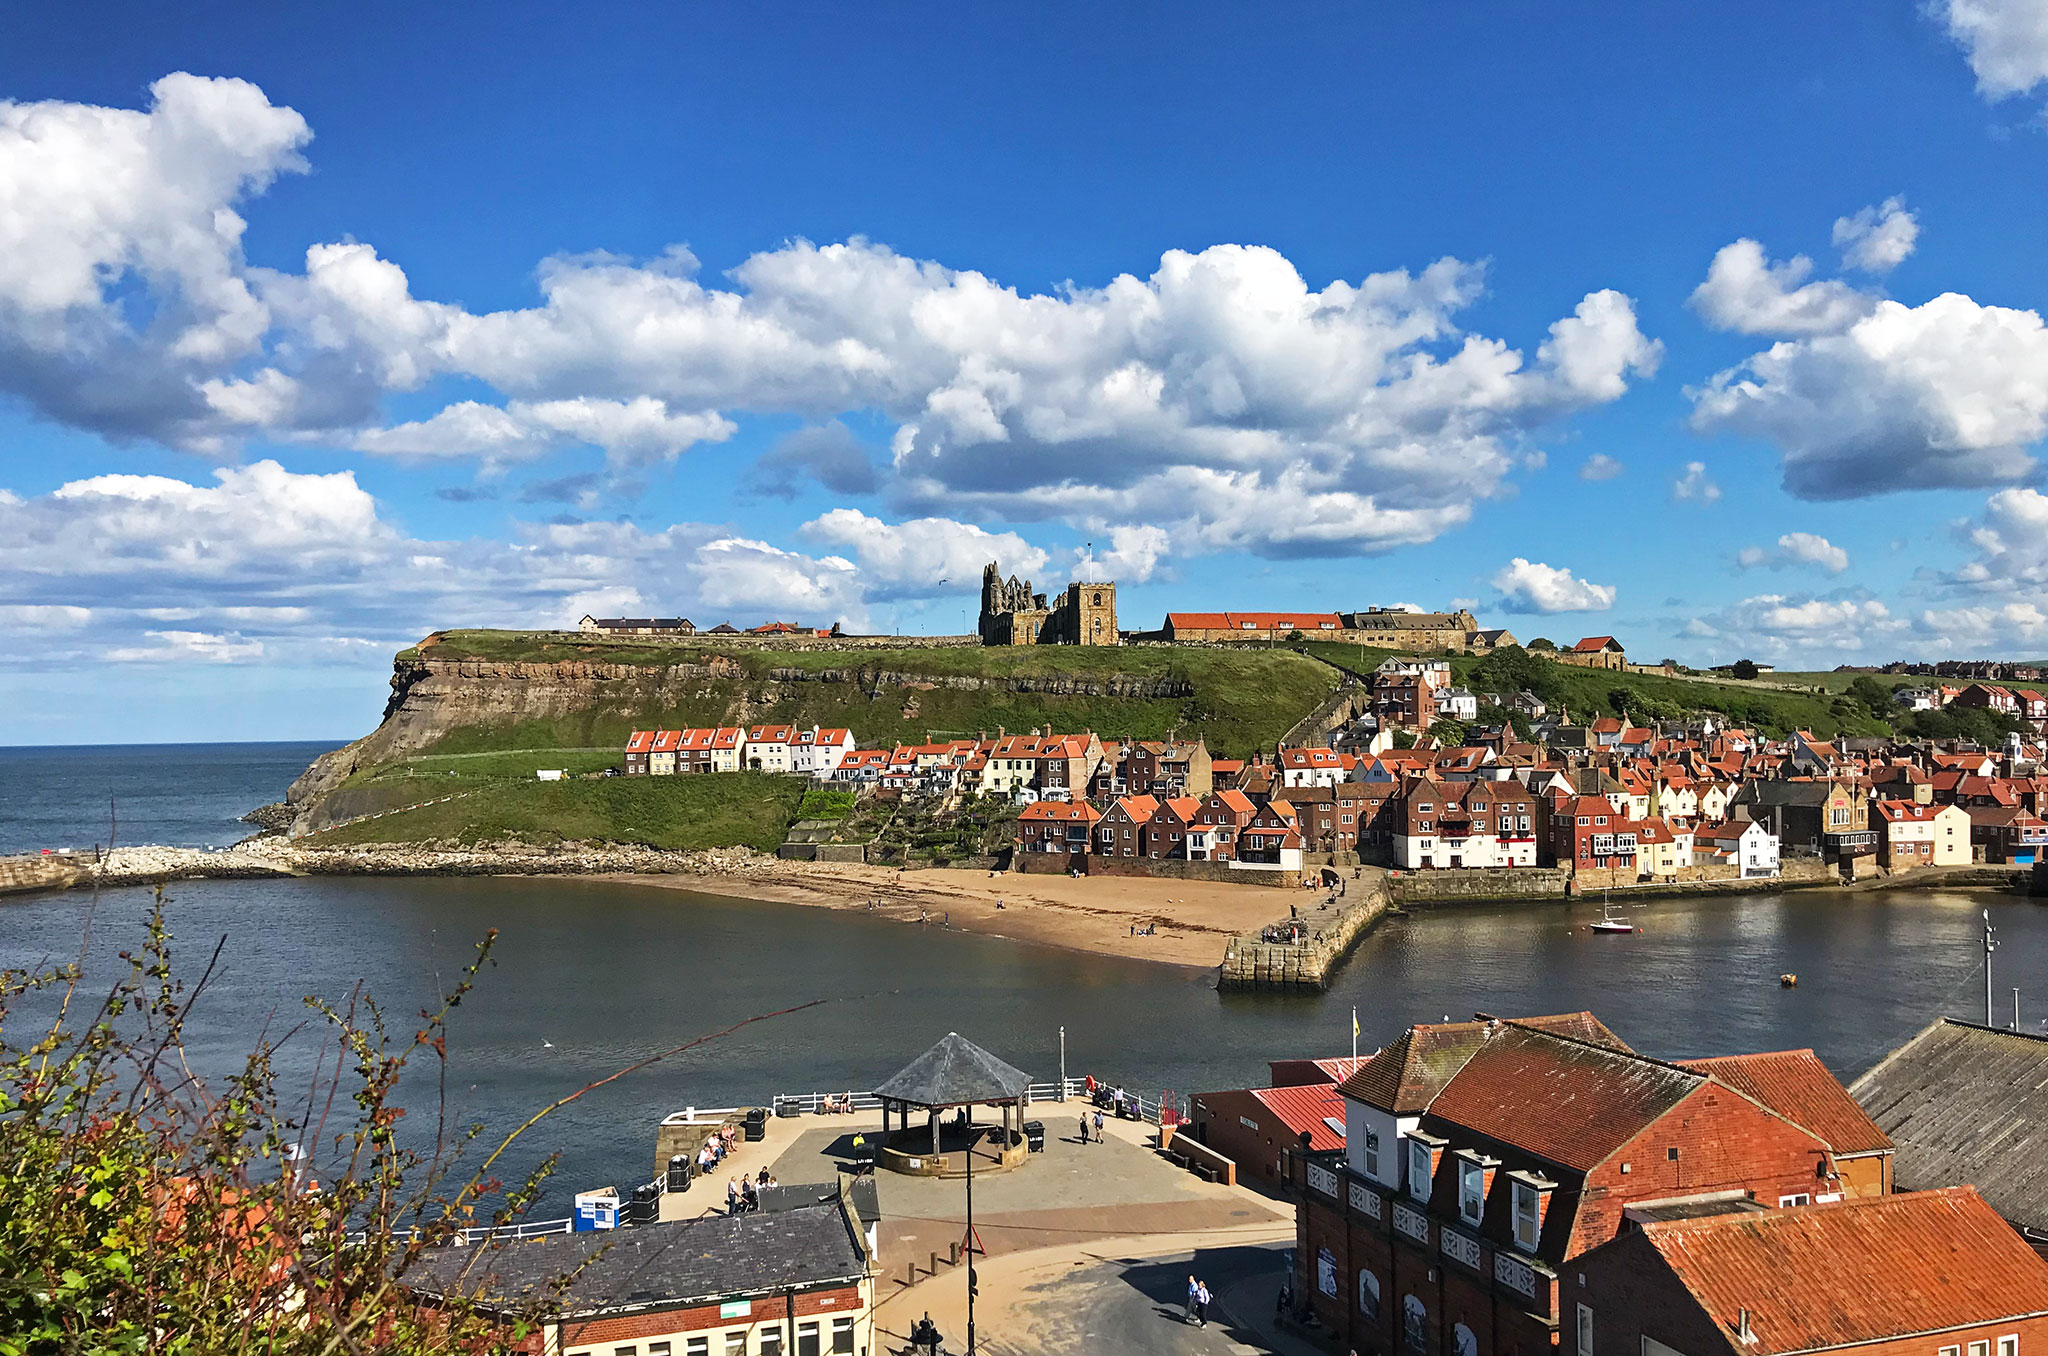 The North Yorkshire east coast town Whitby